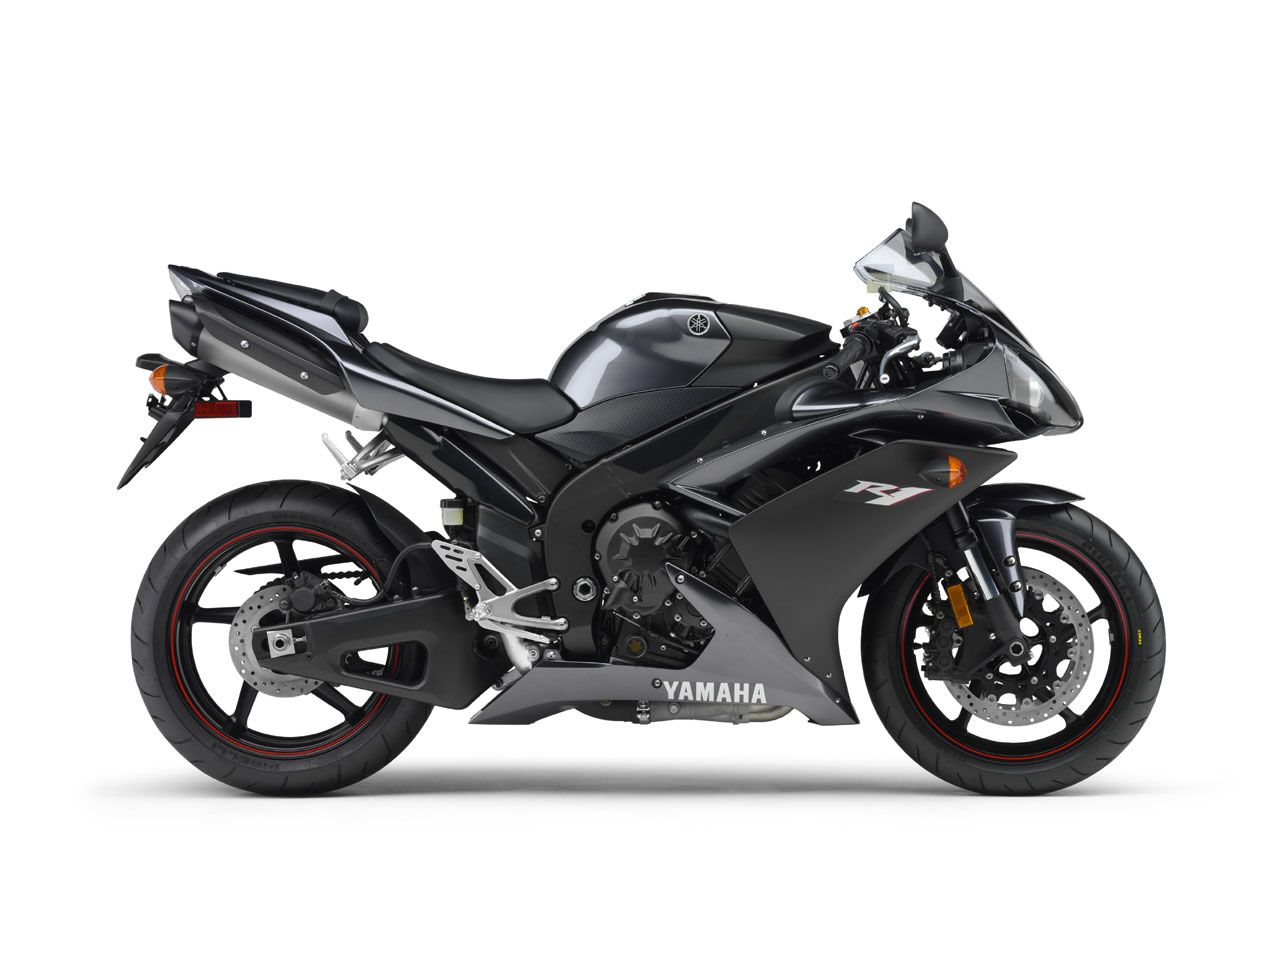 Yamaha Yzf R1, Repair Manuals, Concept Cars, Workshop, Motorcycles,  Motorbikes,